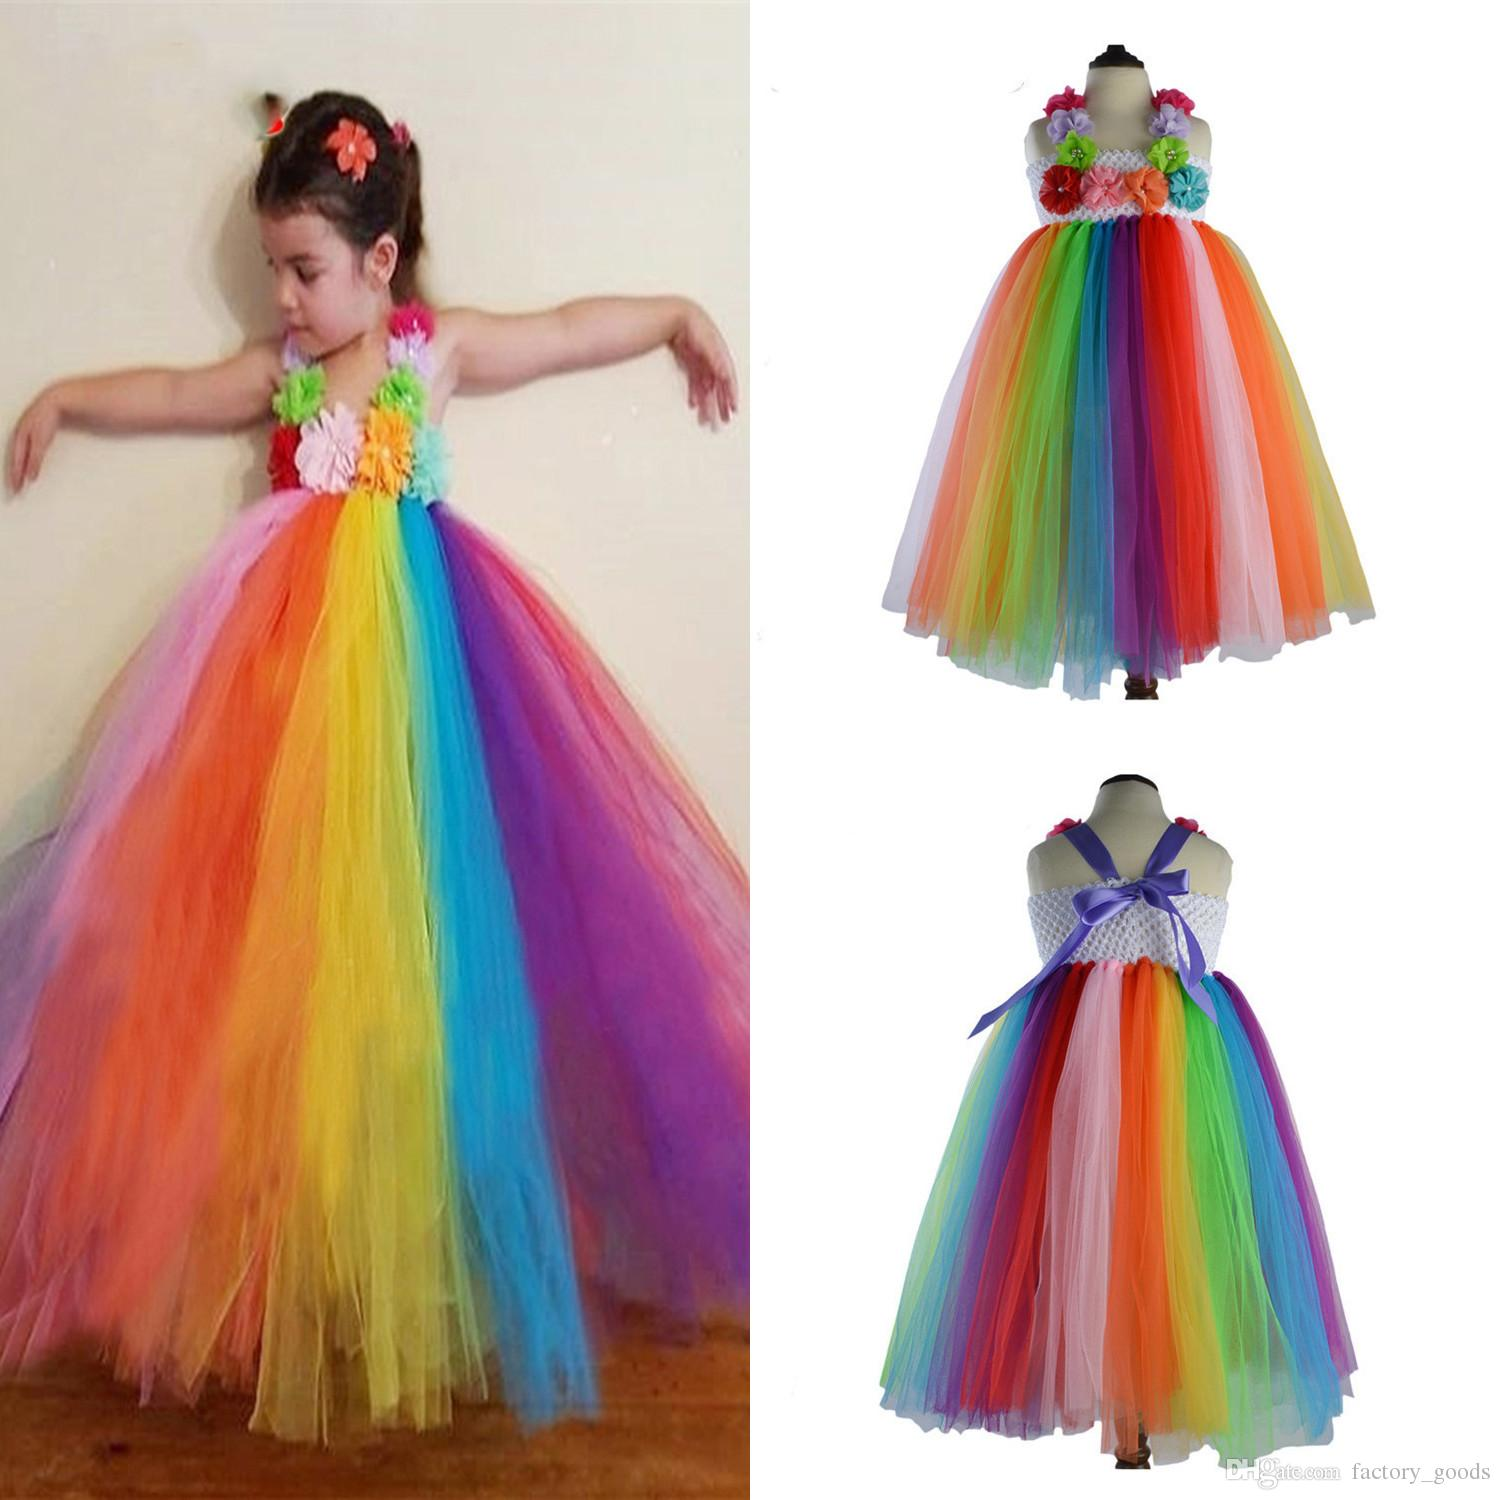 1d642157c55a 2019 Girls Rainbow Dresses Lace Tulle Princess Dress Dance Tutu Suspender  Skirt Kids Christmas Birthday Party Clothing Free DHL 554 From  Factory_goods, ...